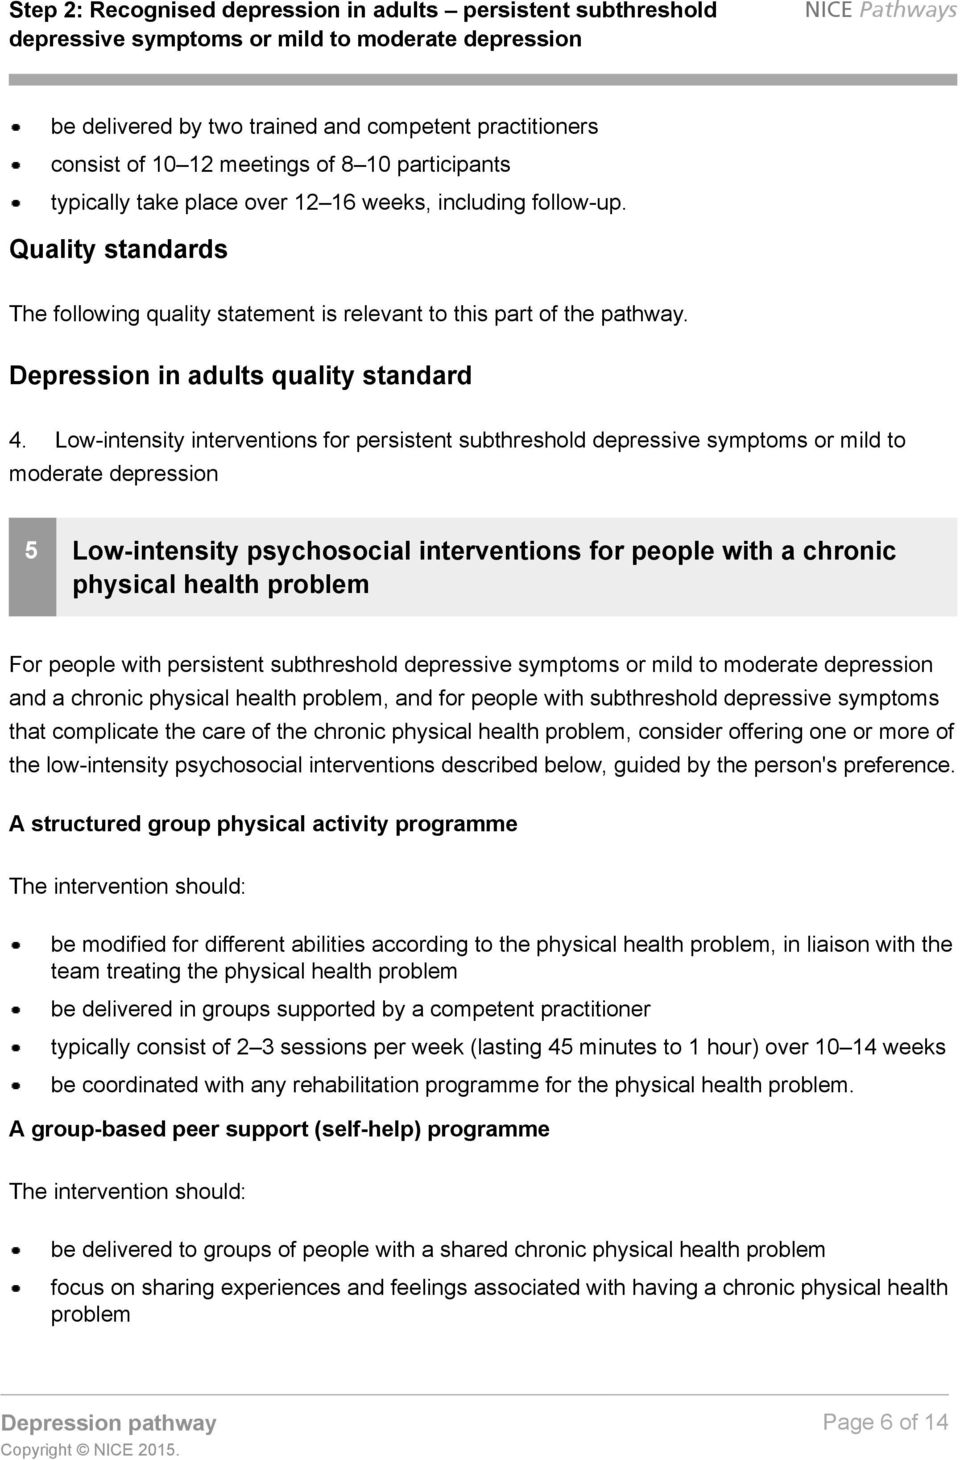 Low-intensity interventions for persistent subthreshold depressive symptoms or mild to moderate depression 5 Low-intensity psychosocial interventions for people with a chronic physical health problem